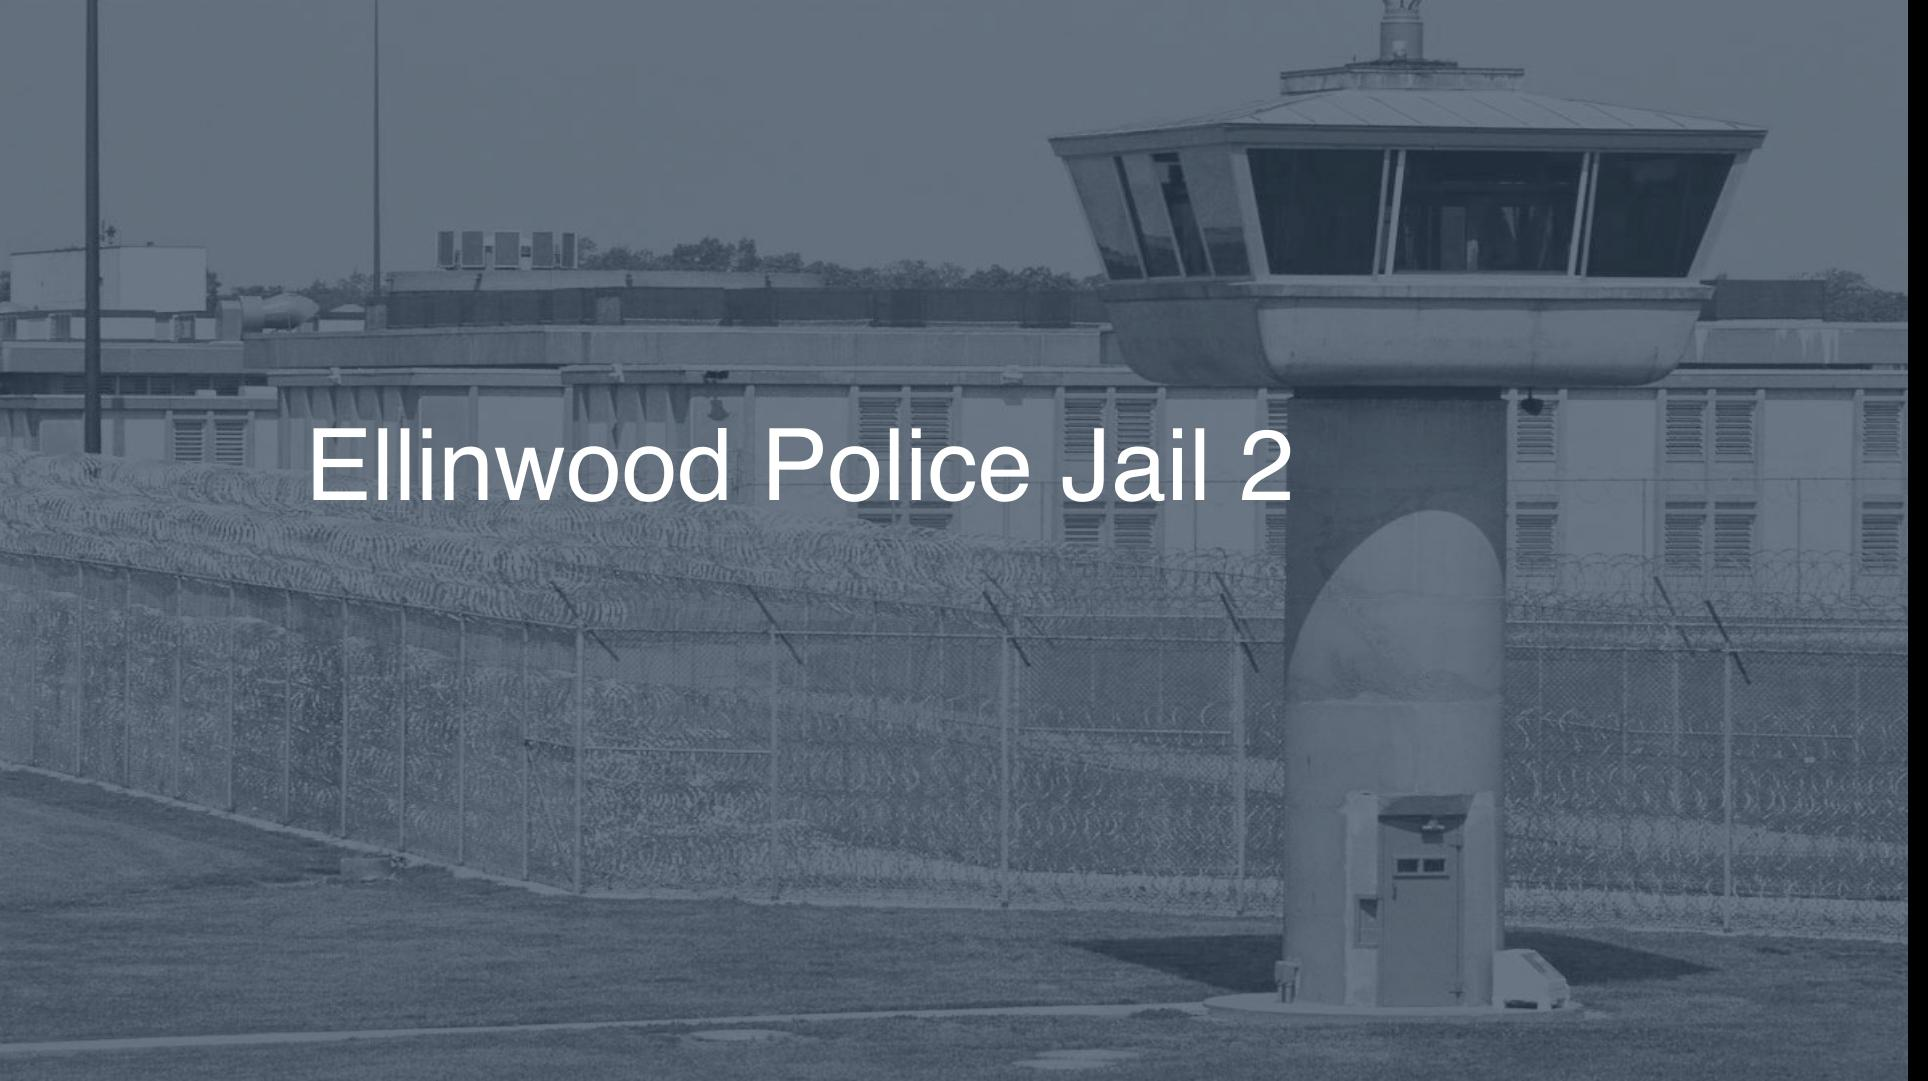 Ellinwood Police Jail | Pigeonly - Inmate Search, Locate